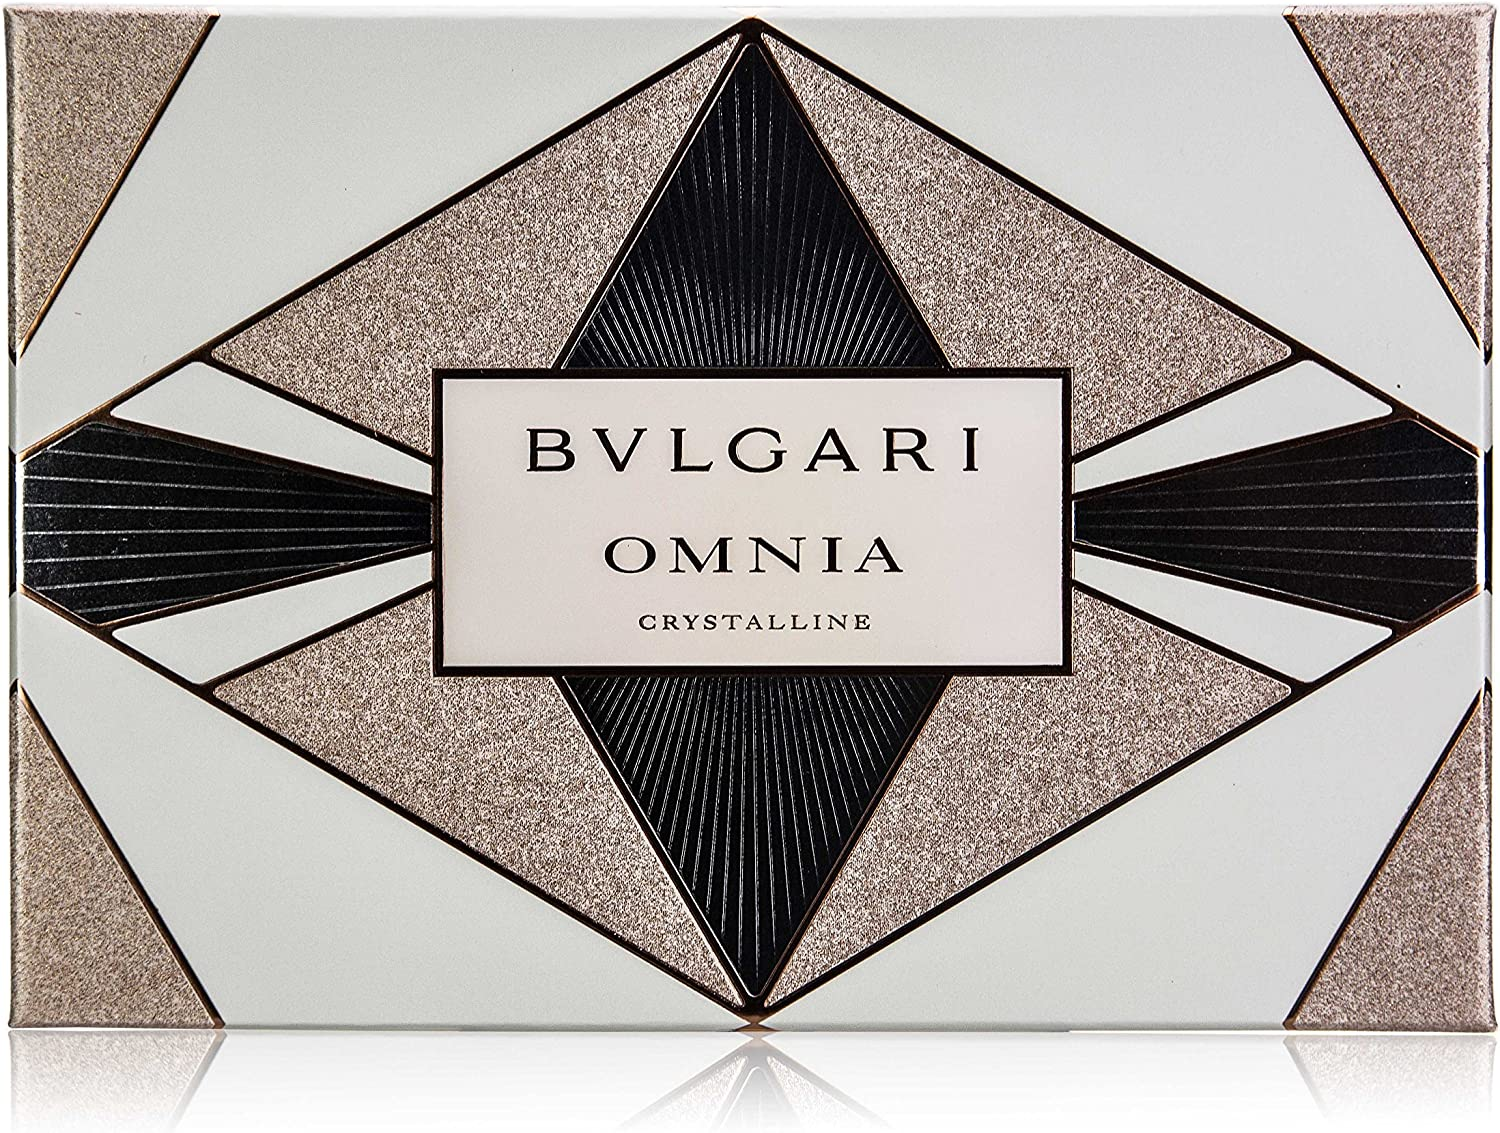 BULGARI Estuche Fragancia Edt Omnia Crystalline 40 ml + Body Milk 40 ml + Gel 40 ml 40 ml (blank): Amazon.es: Belleza